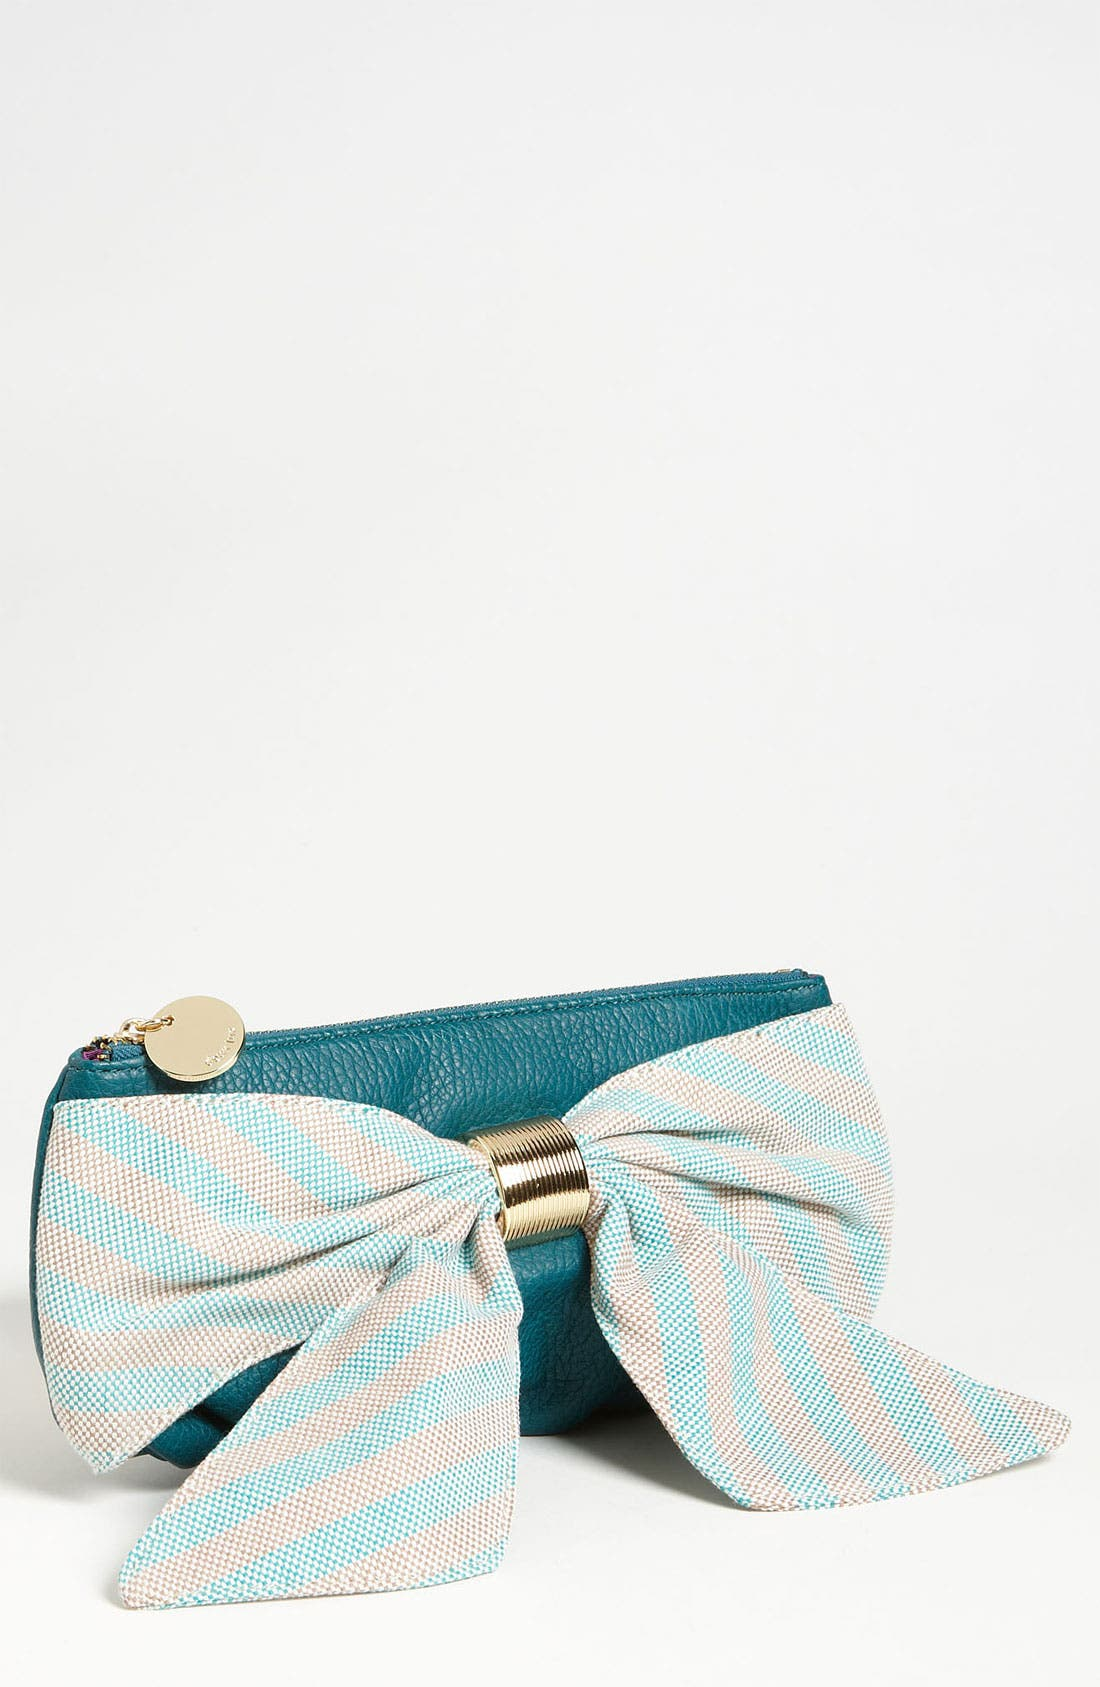 Main Image - Deux Lux 'Heidi Girl' Stripe Box Clutch